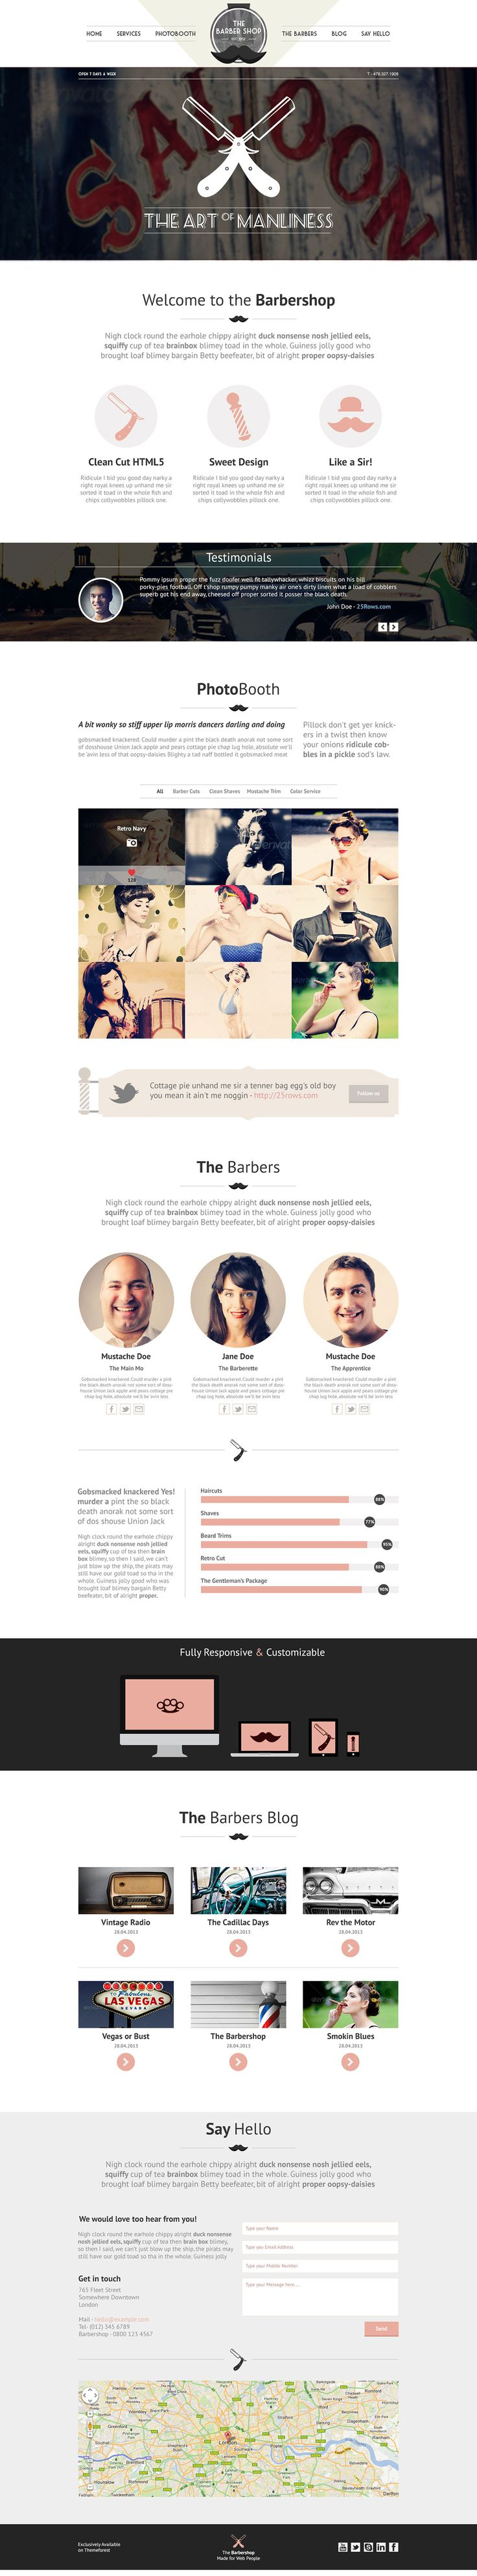 'The Barbershop' is a $13 One Page Responsive Template with a clean, unique retro/vintage design. The theme is packed with some great features to display any kind of details for your website. The theme can be used for Barbershops and for your personal portfolio.